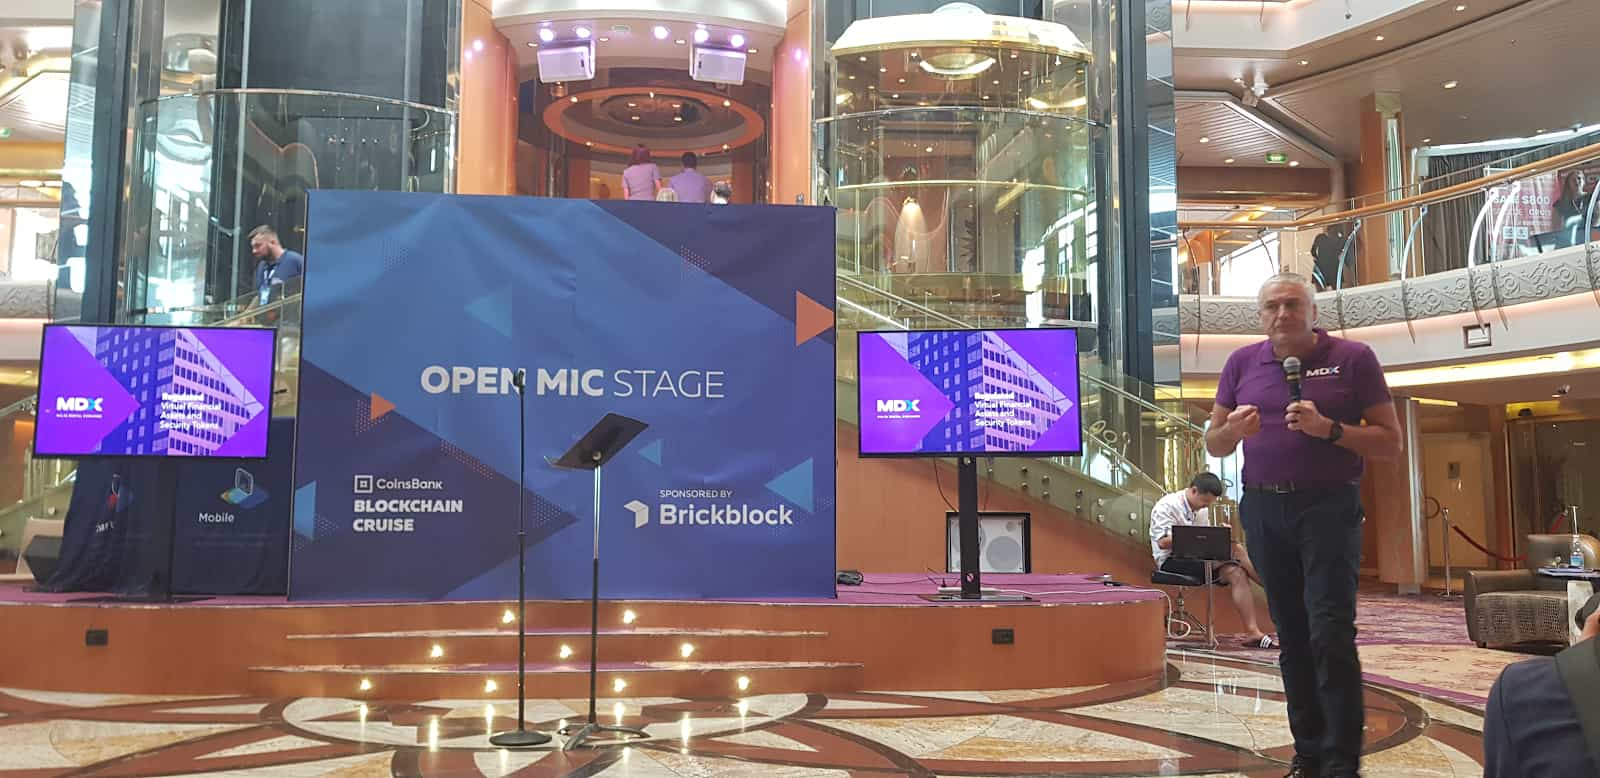 The open mic stage arranged by CoinsBank